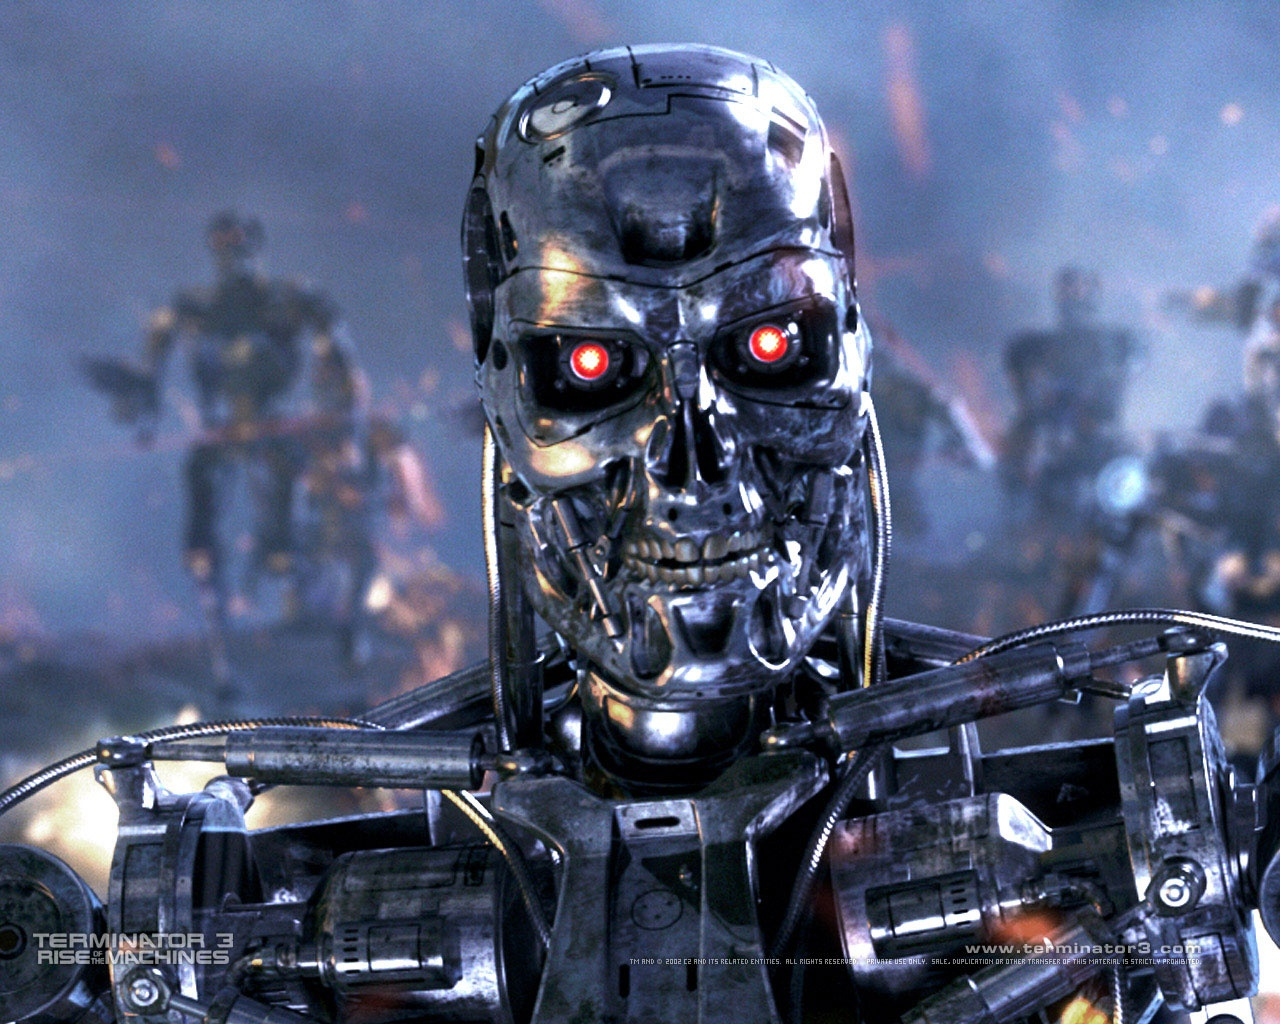 T 800 Terminator The T-800 is now the most